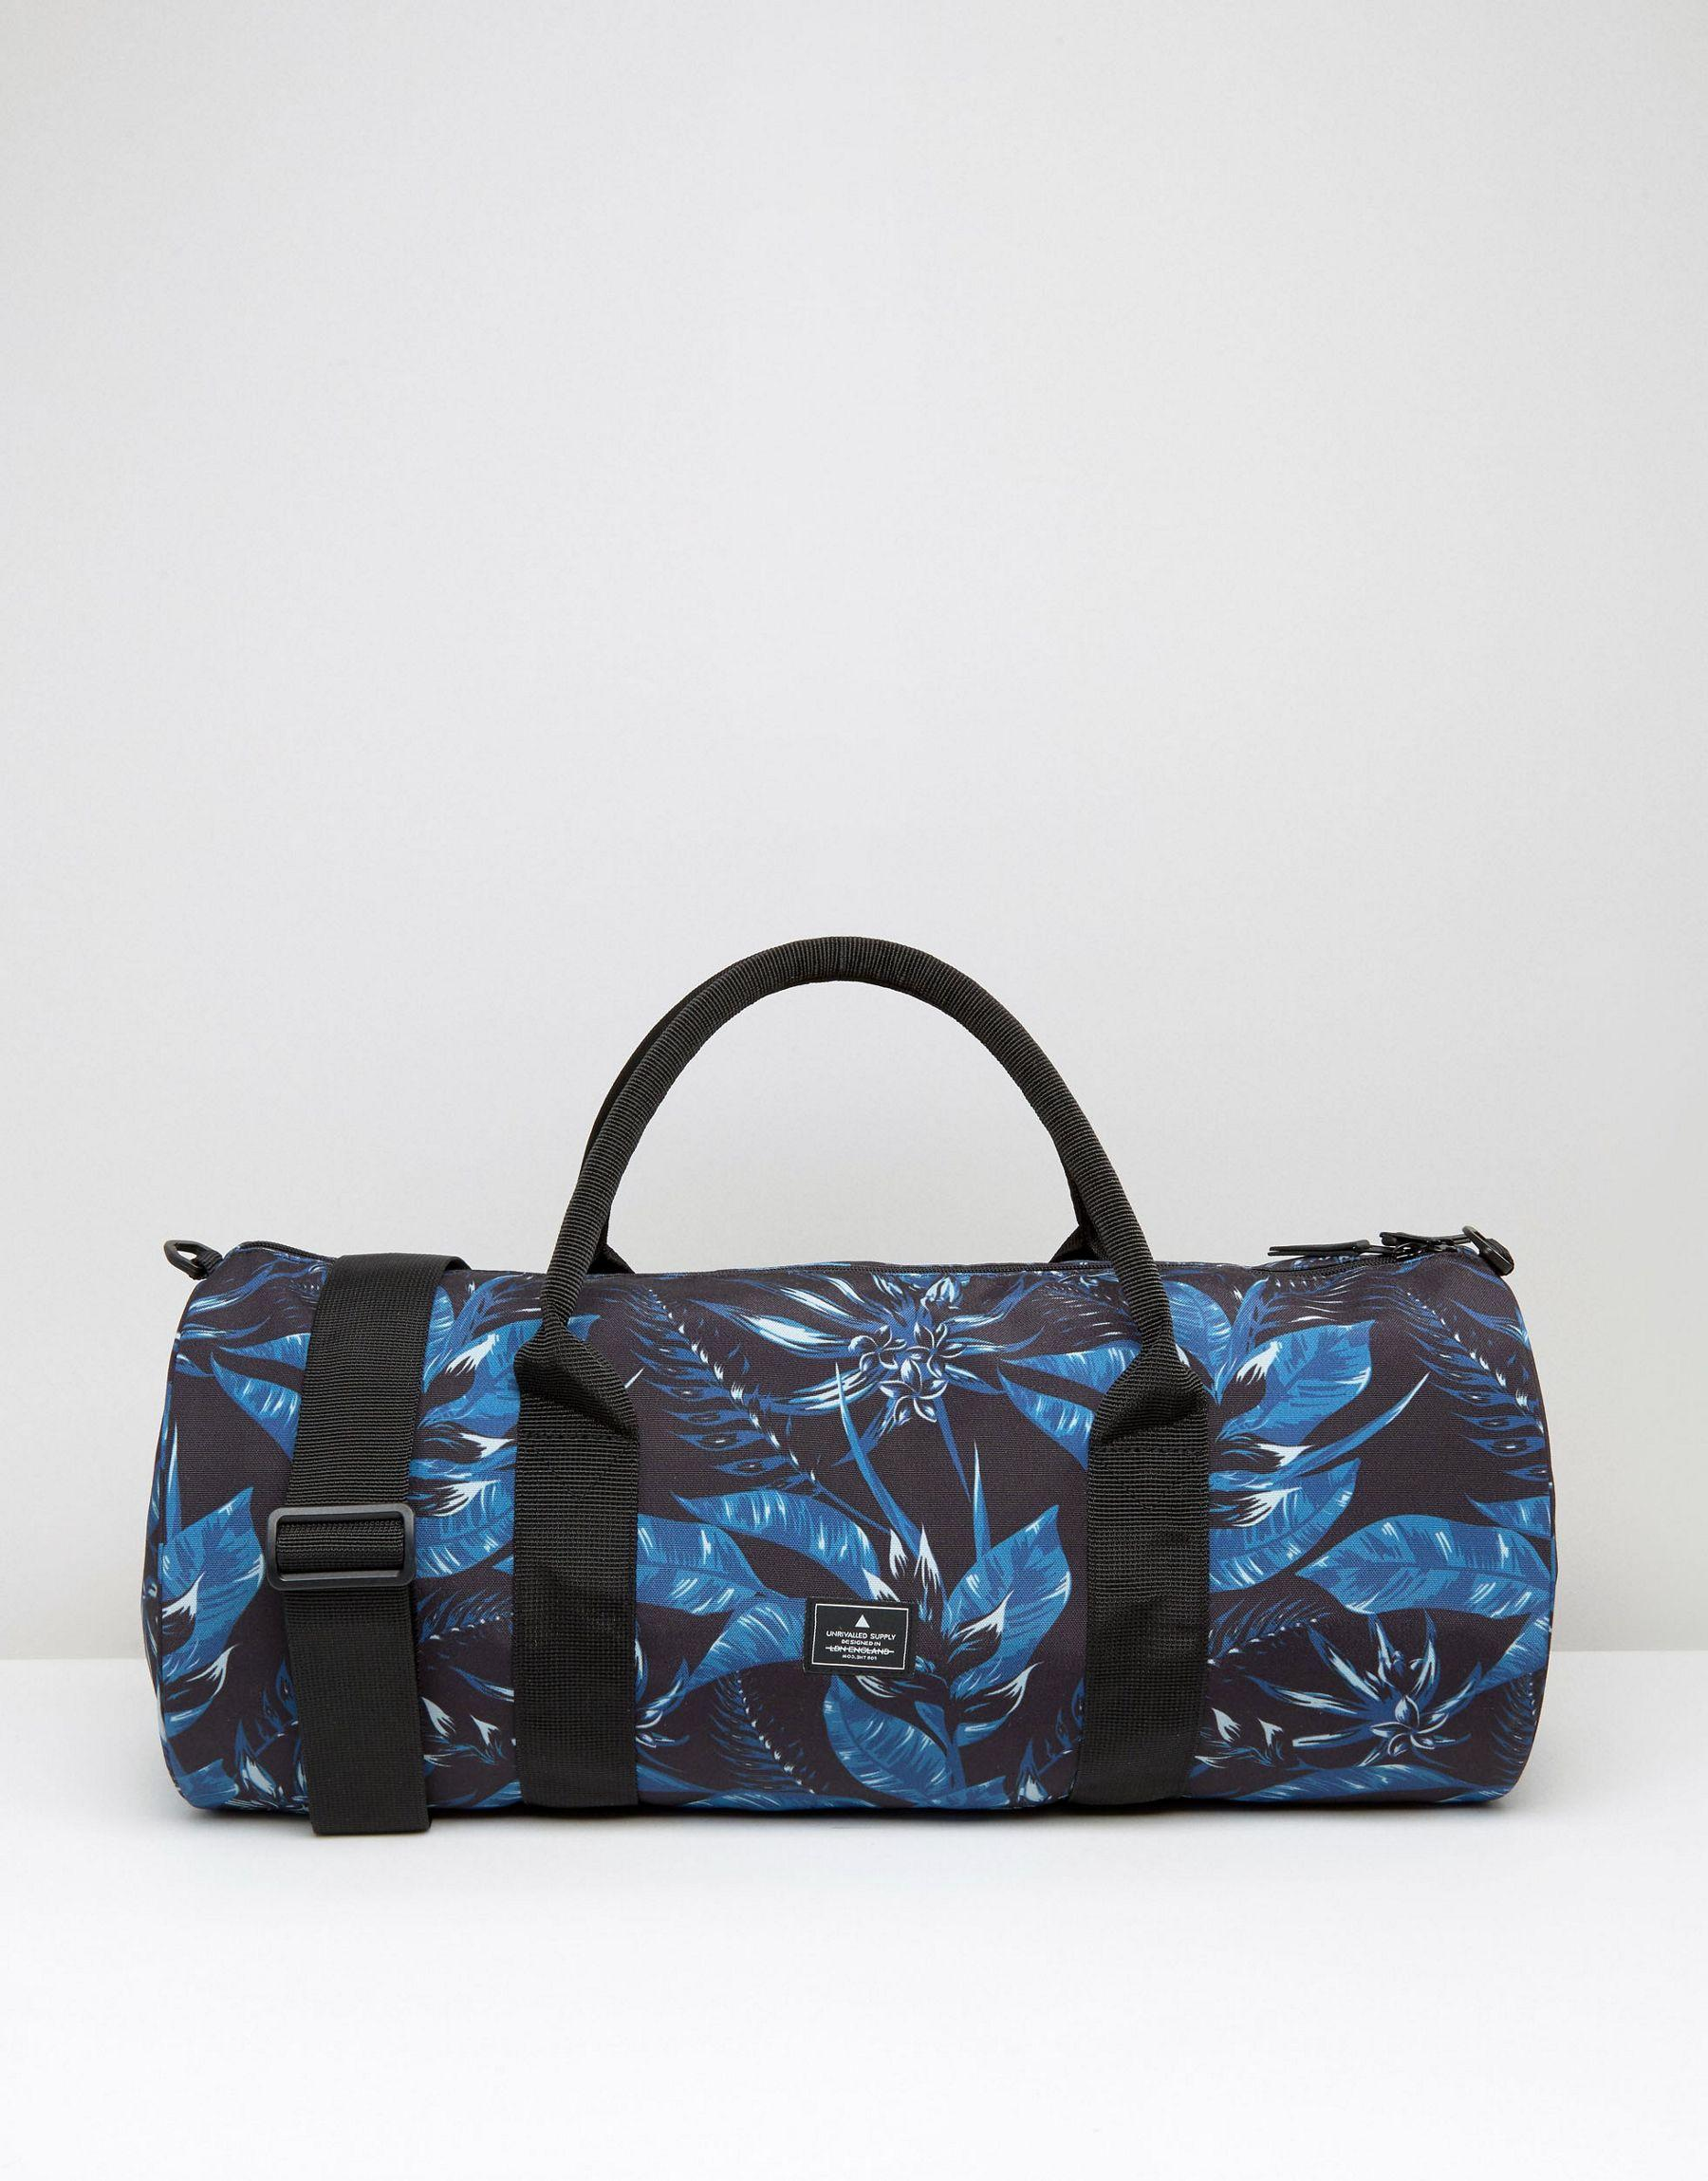 Asos Barrel Bag With Floral Print In Black For Men | Lyst